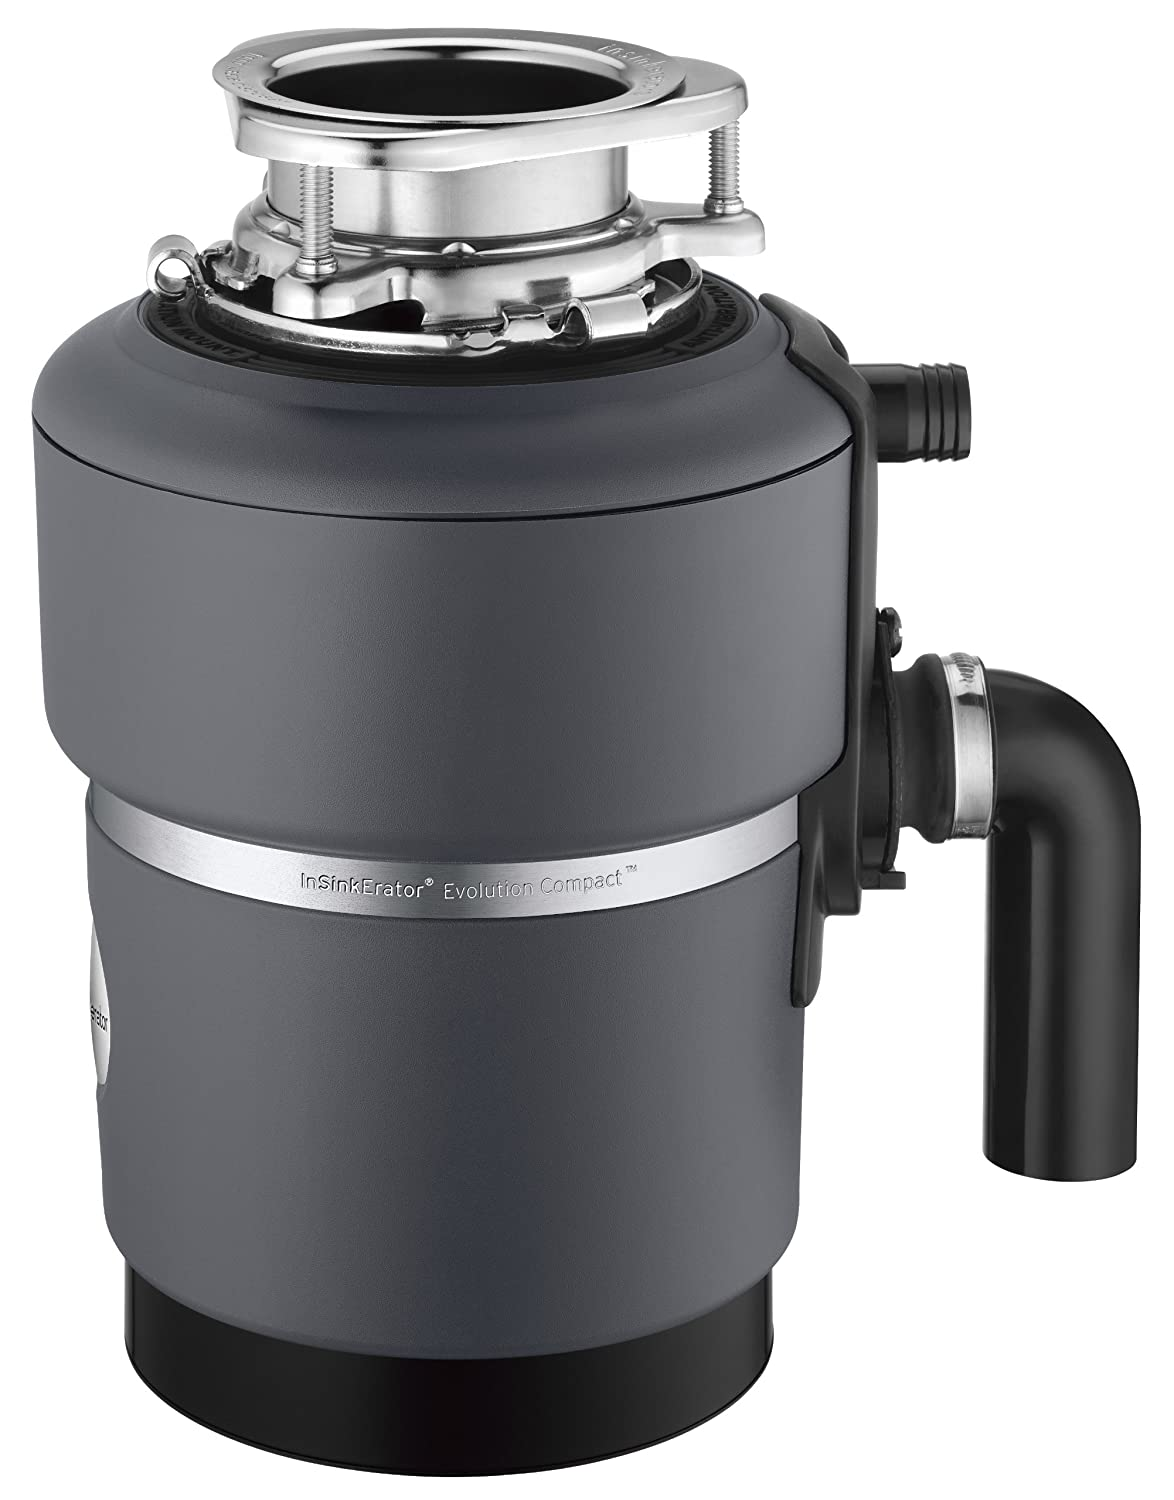 Top rated garbage disposals